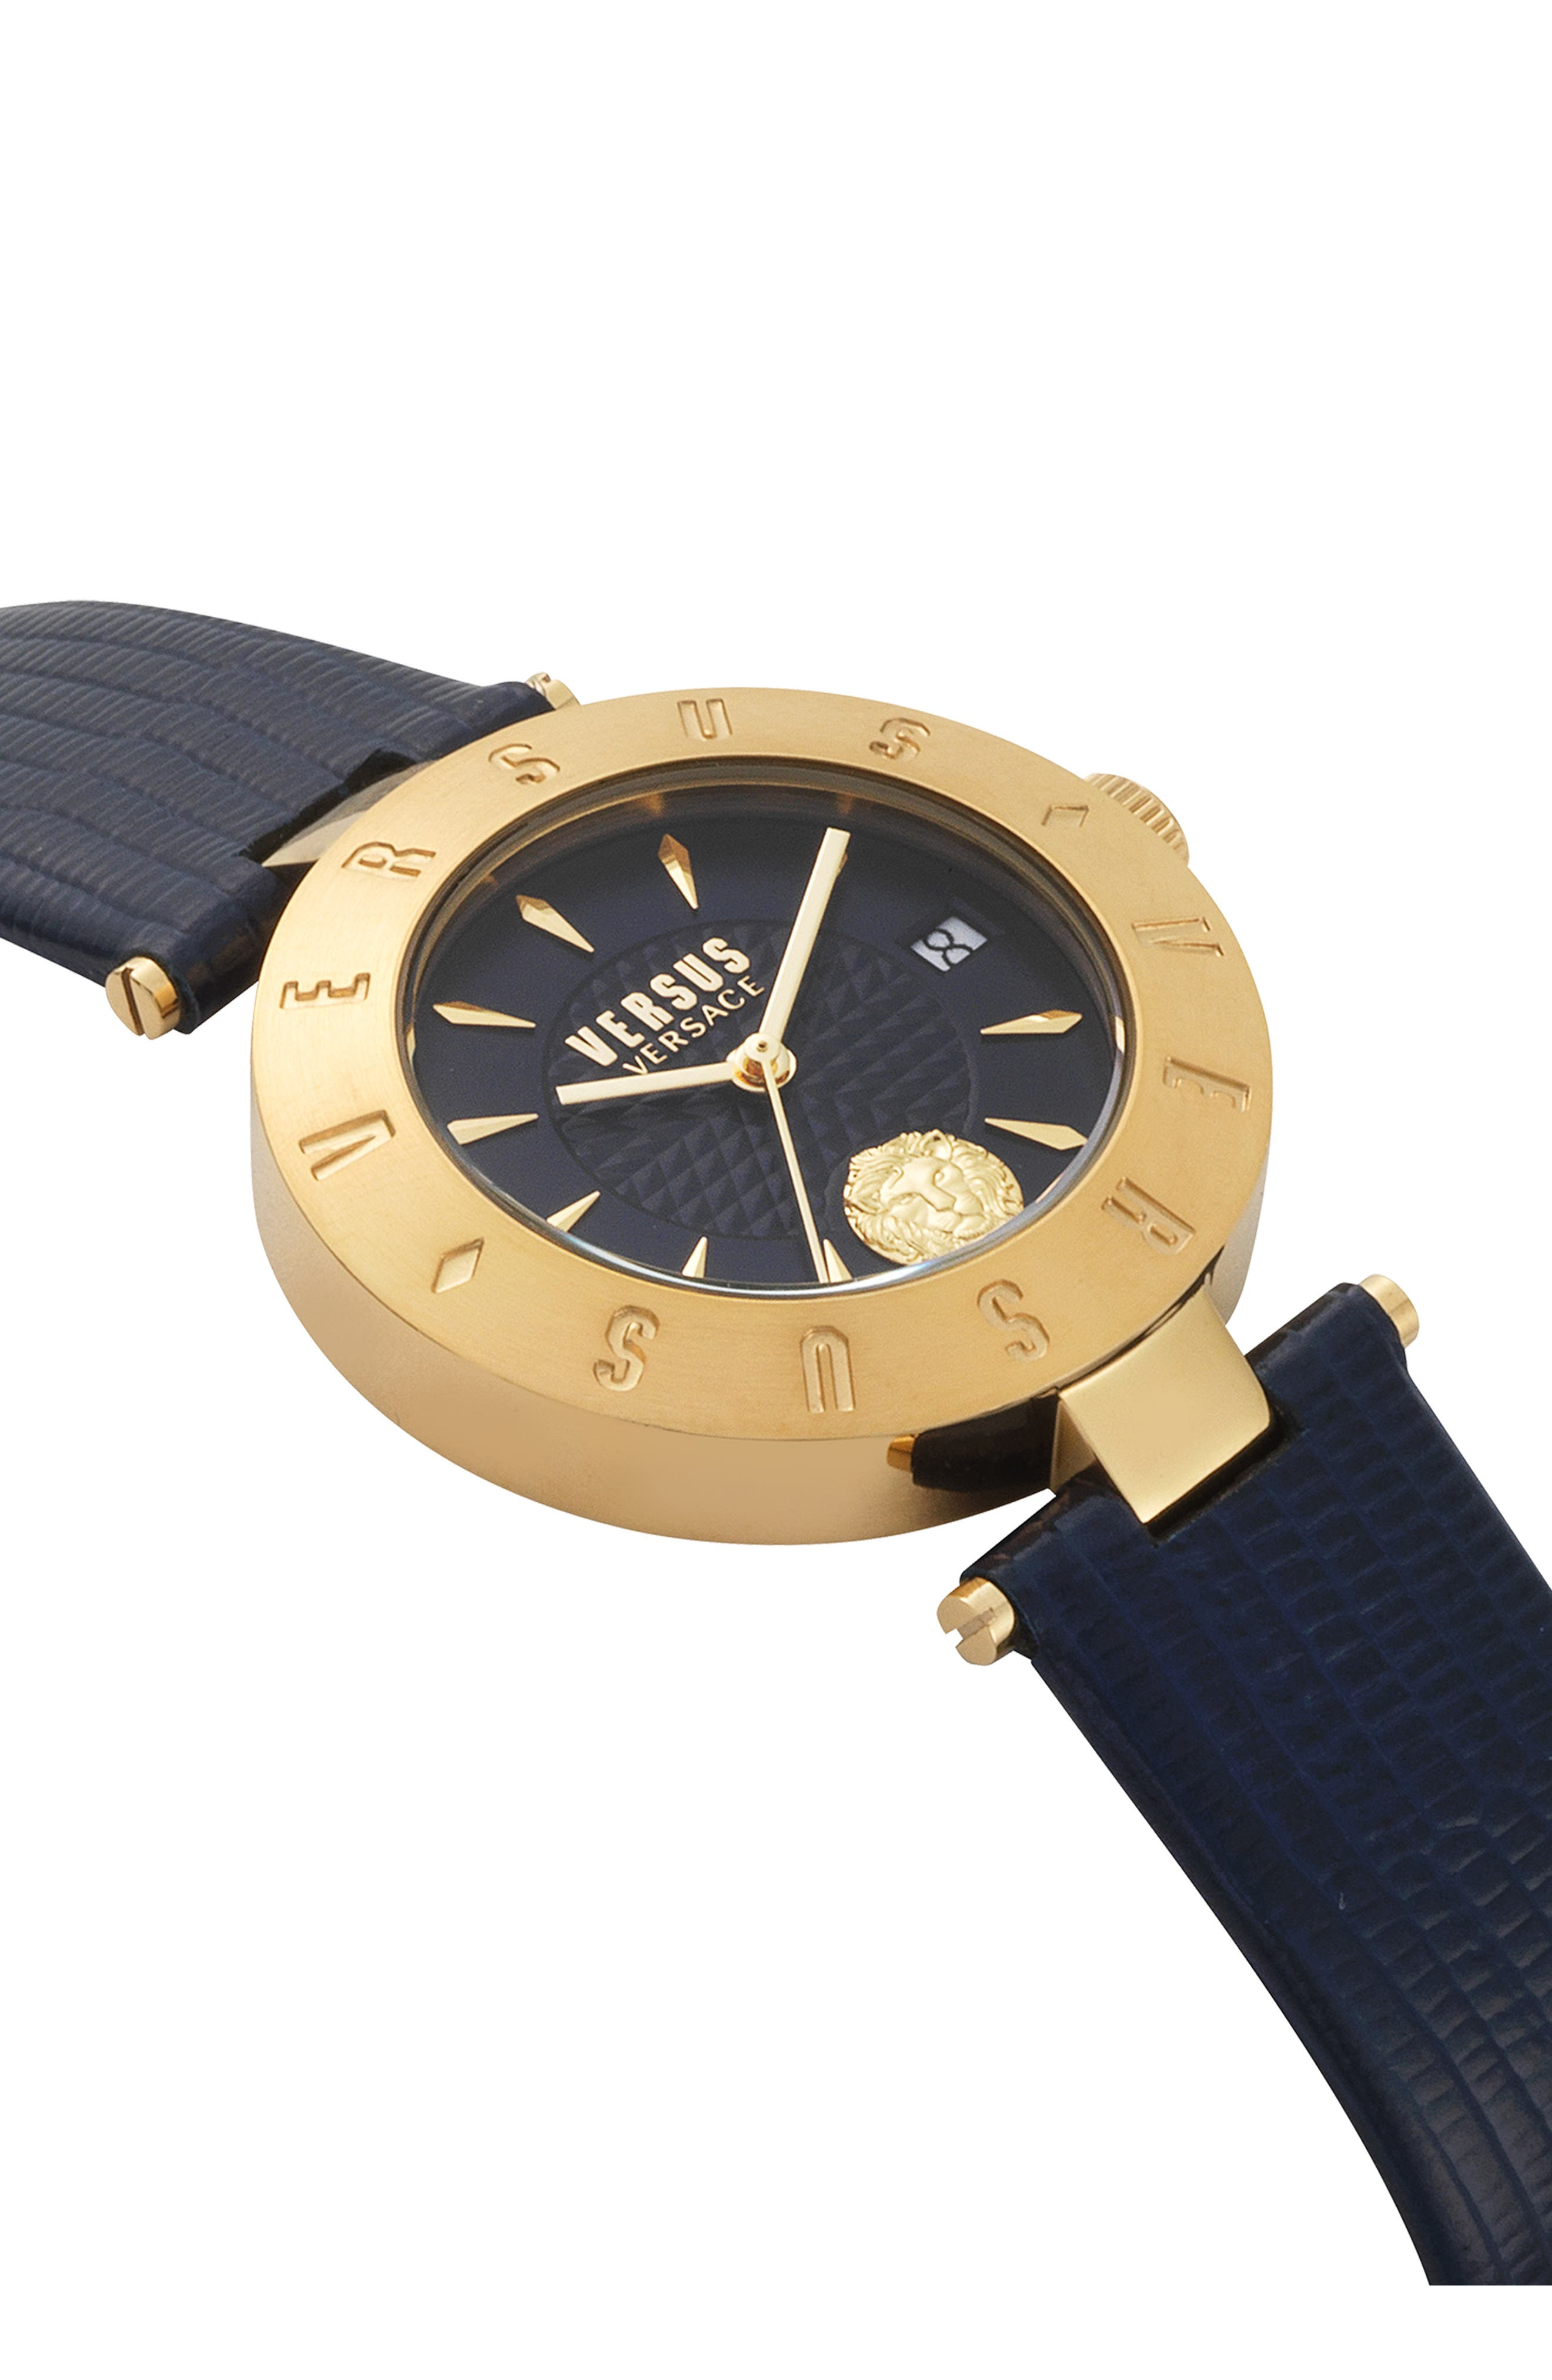 VERSUS VERSACE, Logo Leather Strap Watch, 34mm, Alternate thumbnail 3, color, BLUE/ GOLD